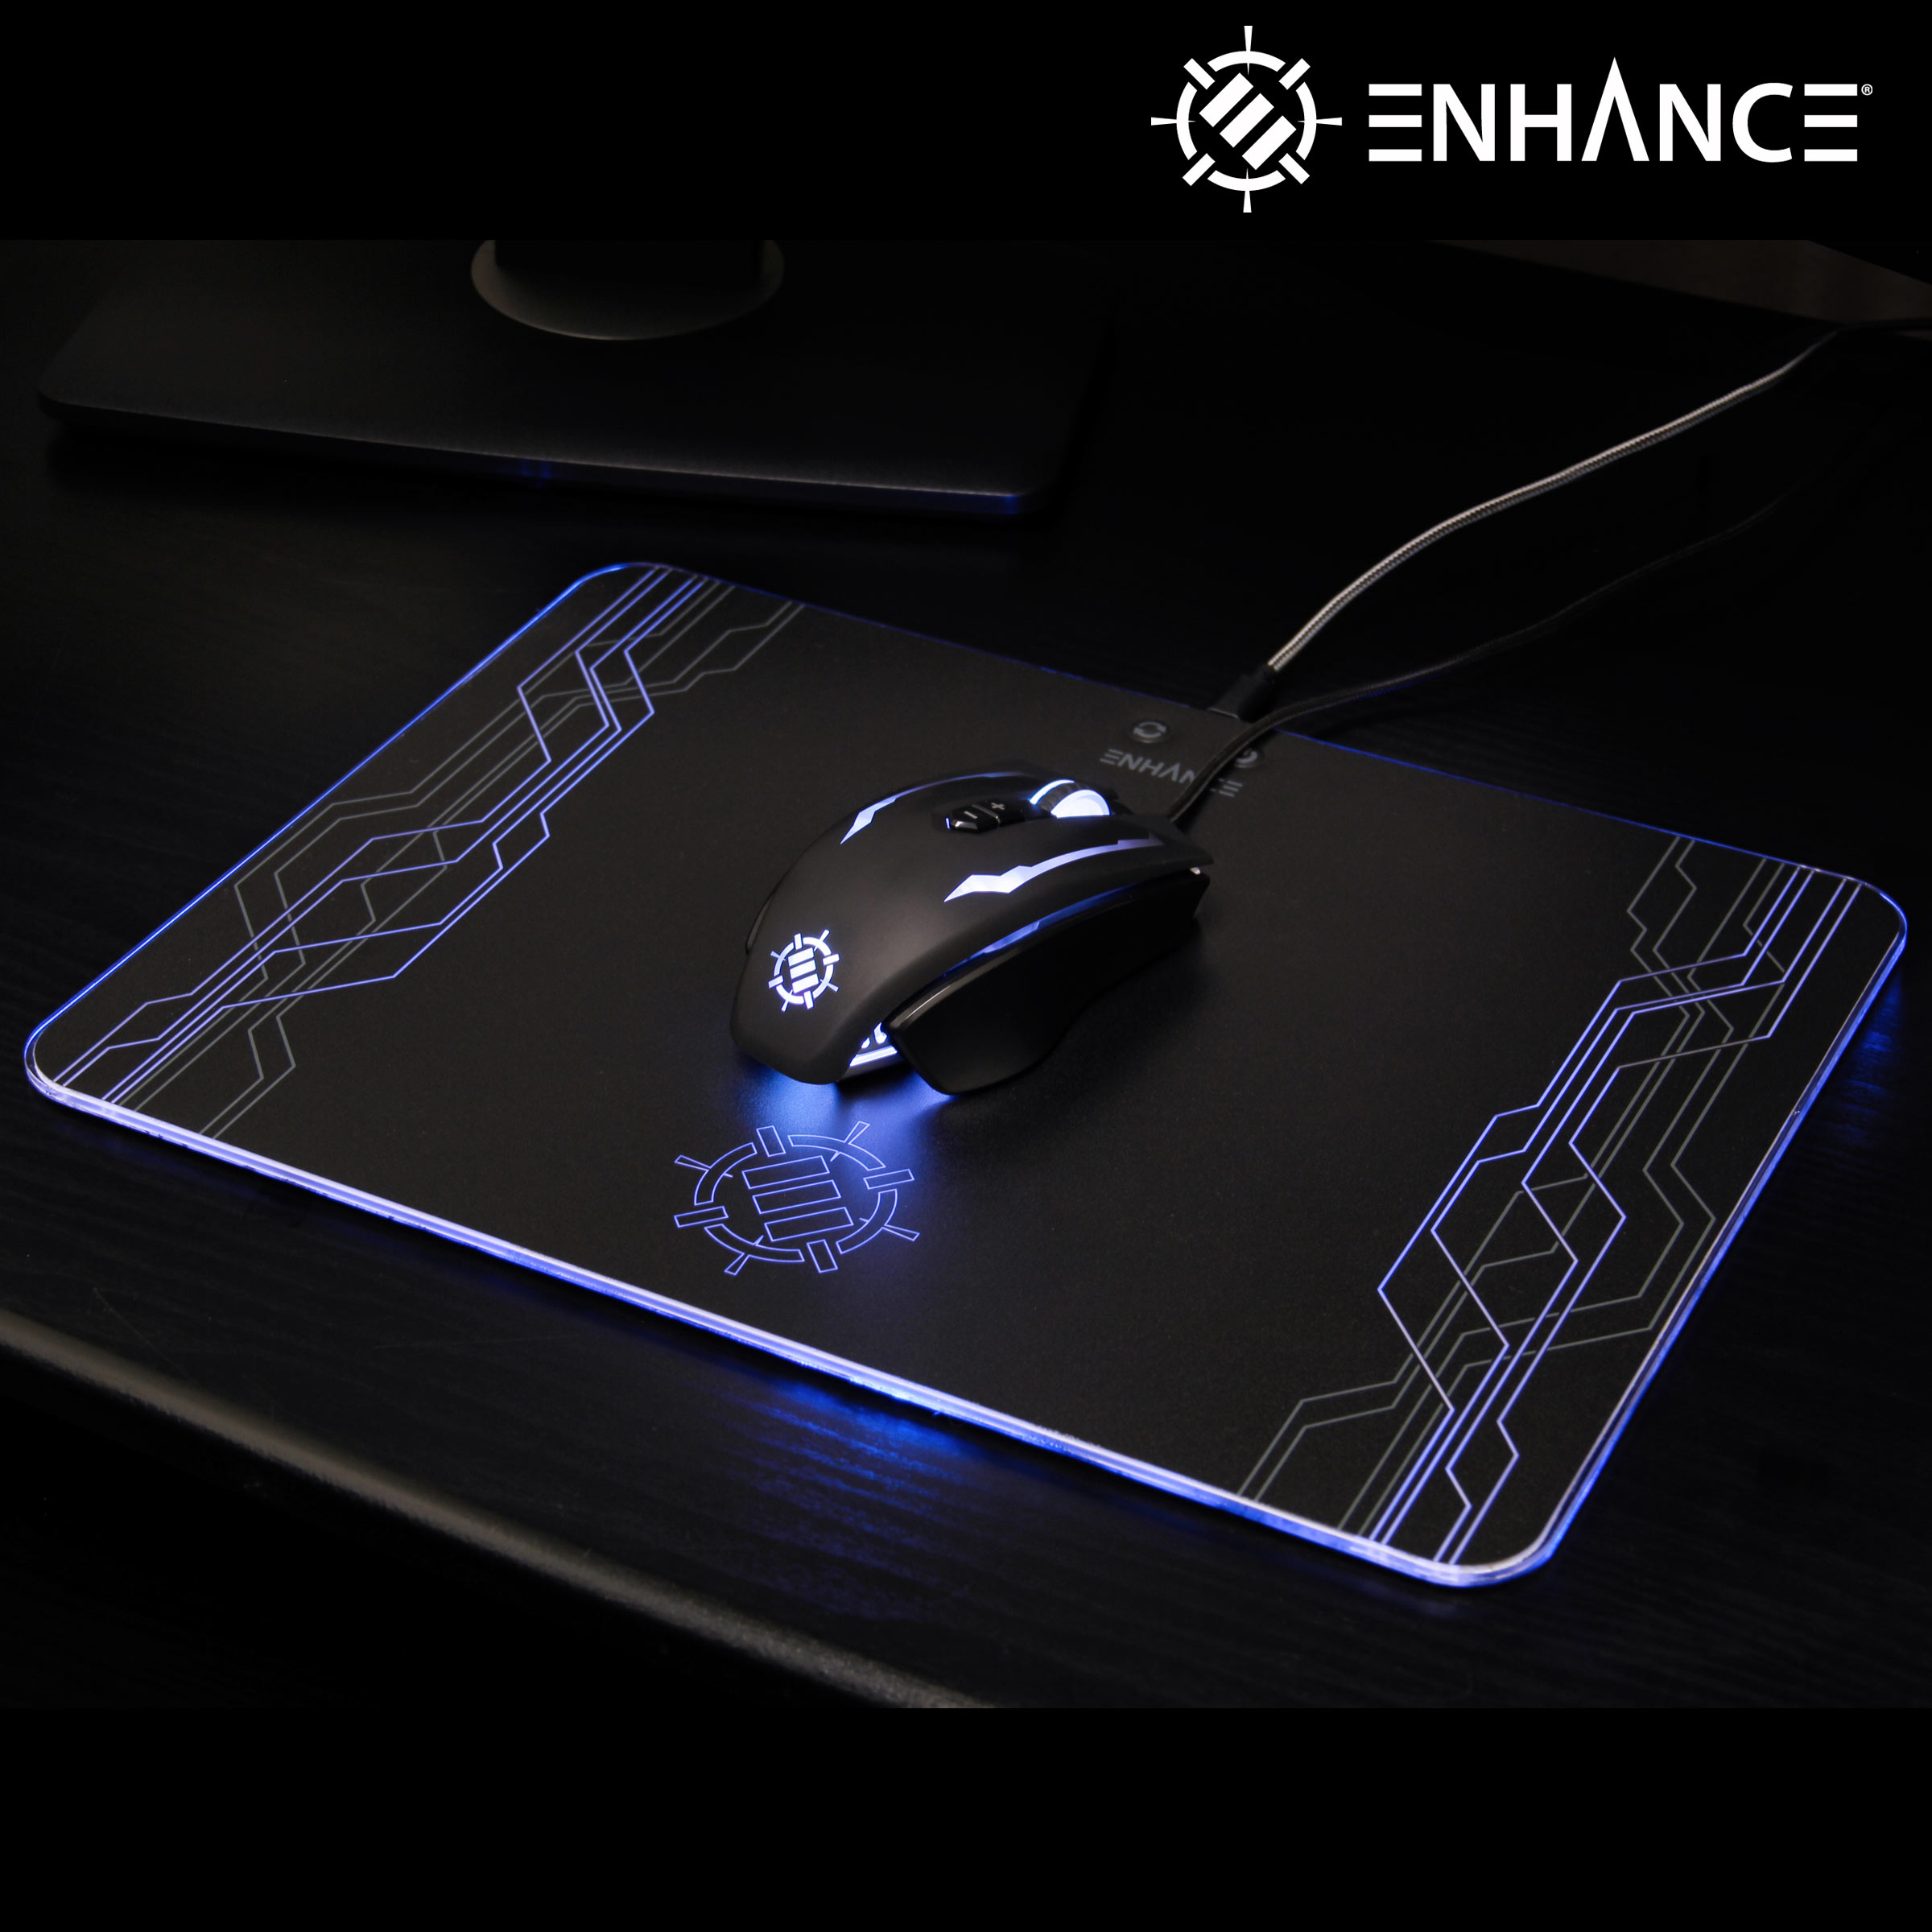 ENHANCE SCORIA Pro Gaming Mouse - RGB LED , 7 Programmable Buttons , 14400 DPI & Metal Body 2